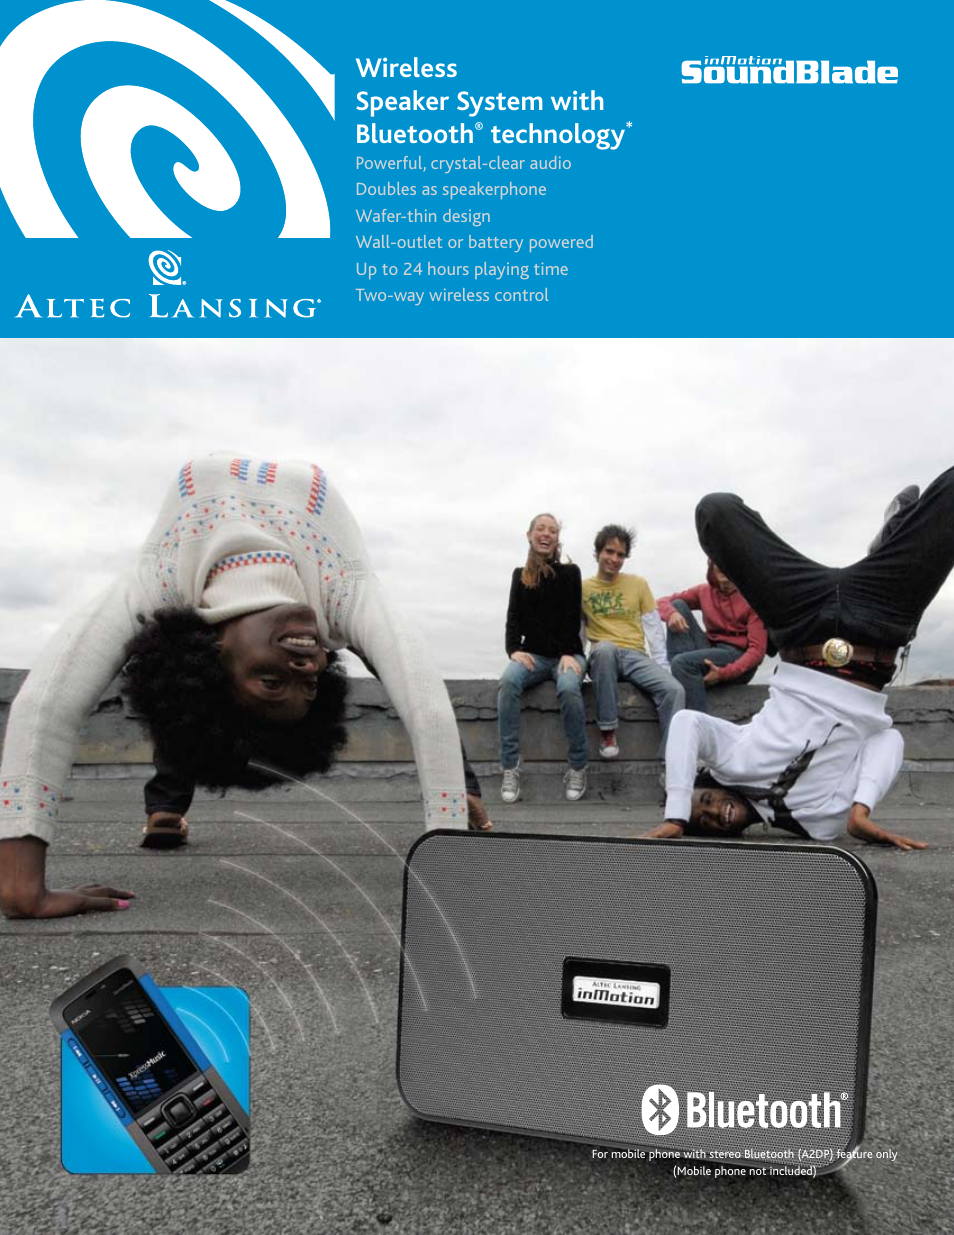 altec lansing inmotion soundblade user manual 2 pages rh manualsdir com Altec Lansing InMotion Speakers Altec Lansing InMotion IM310